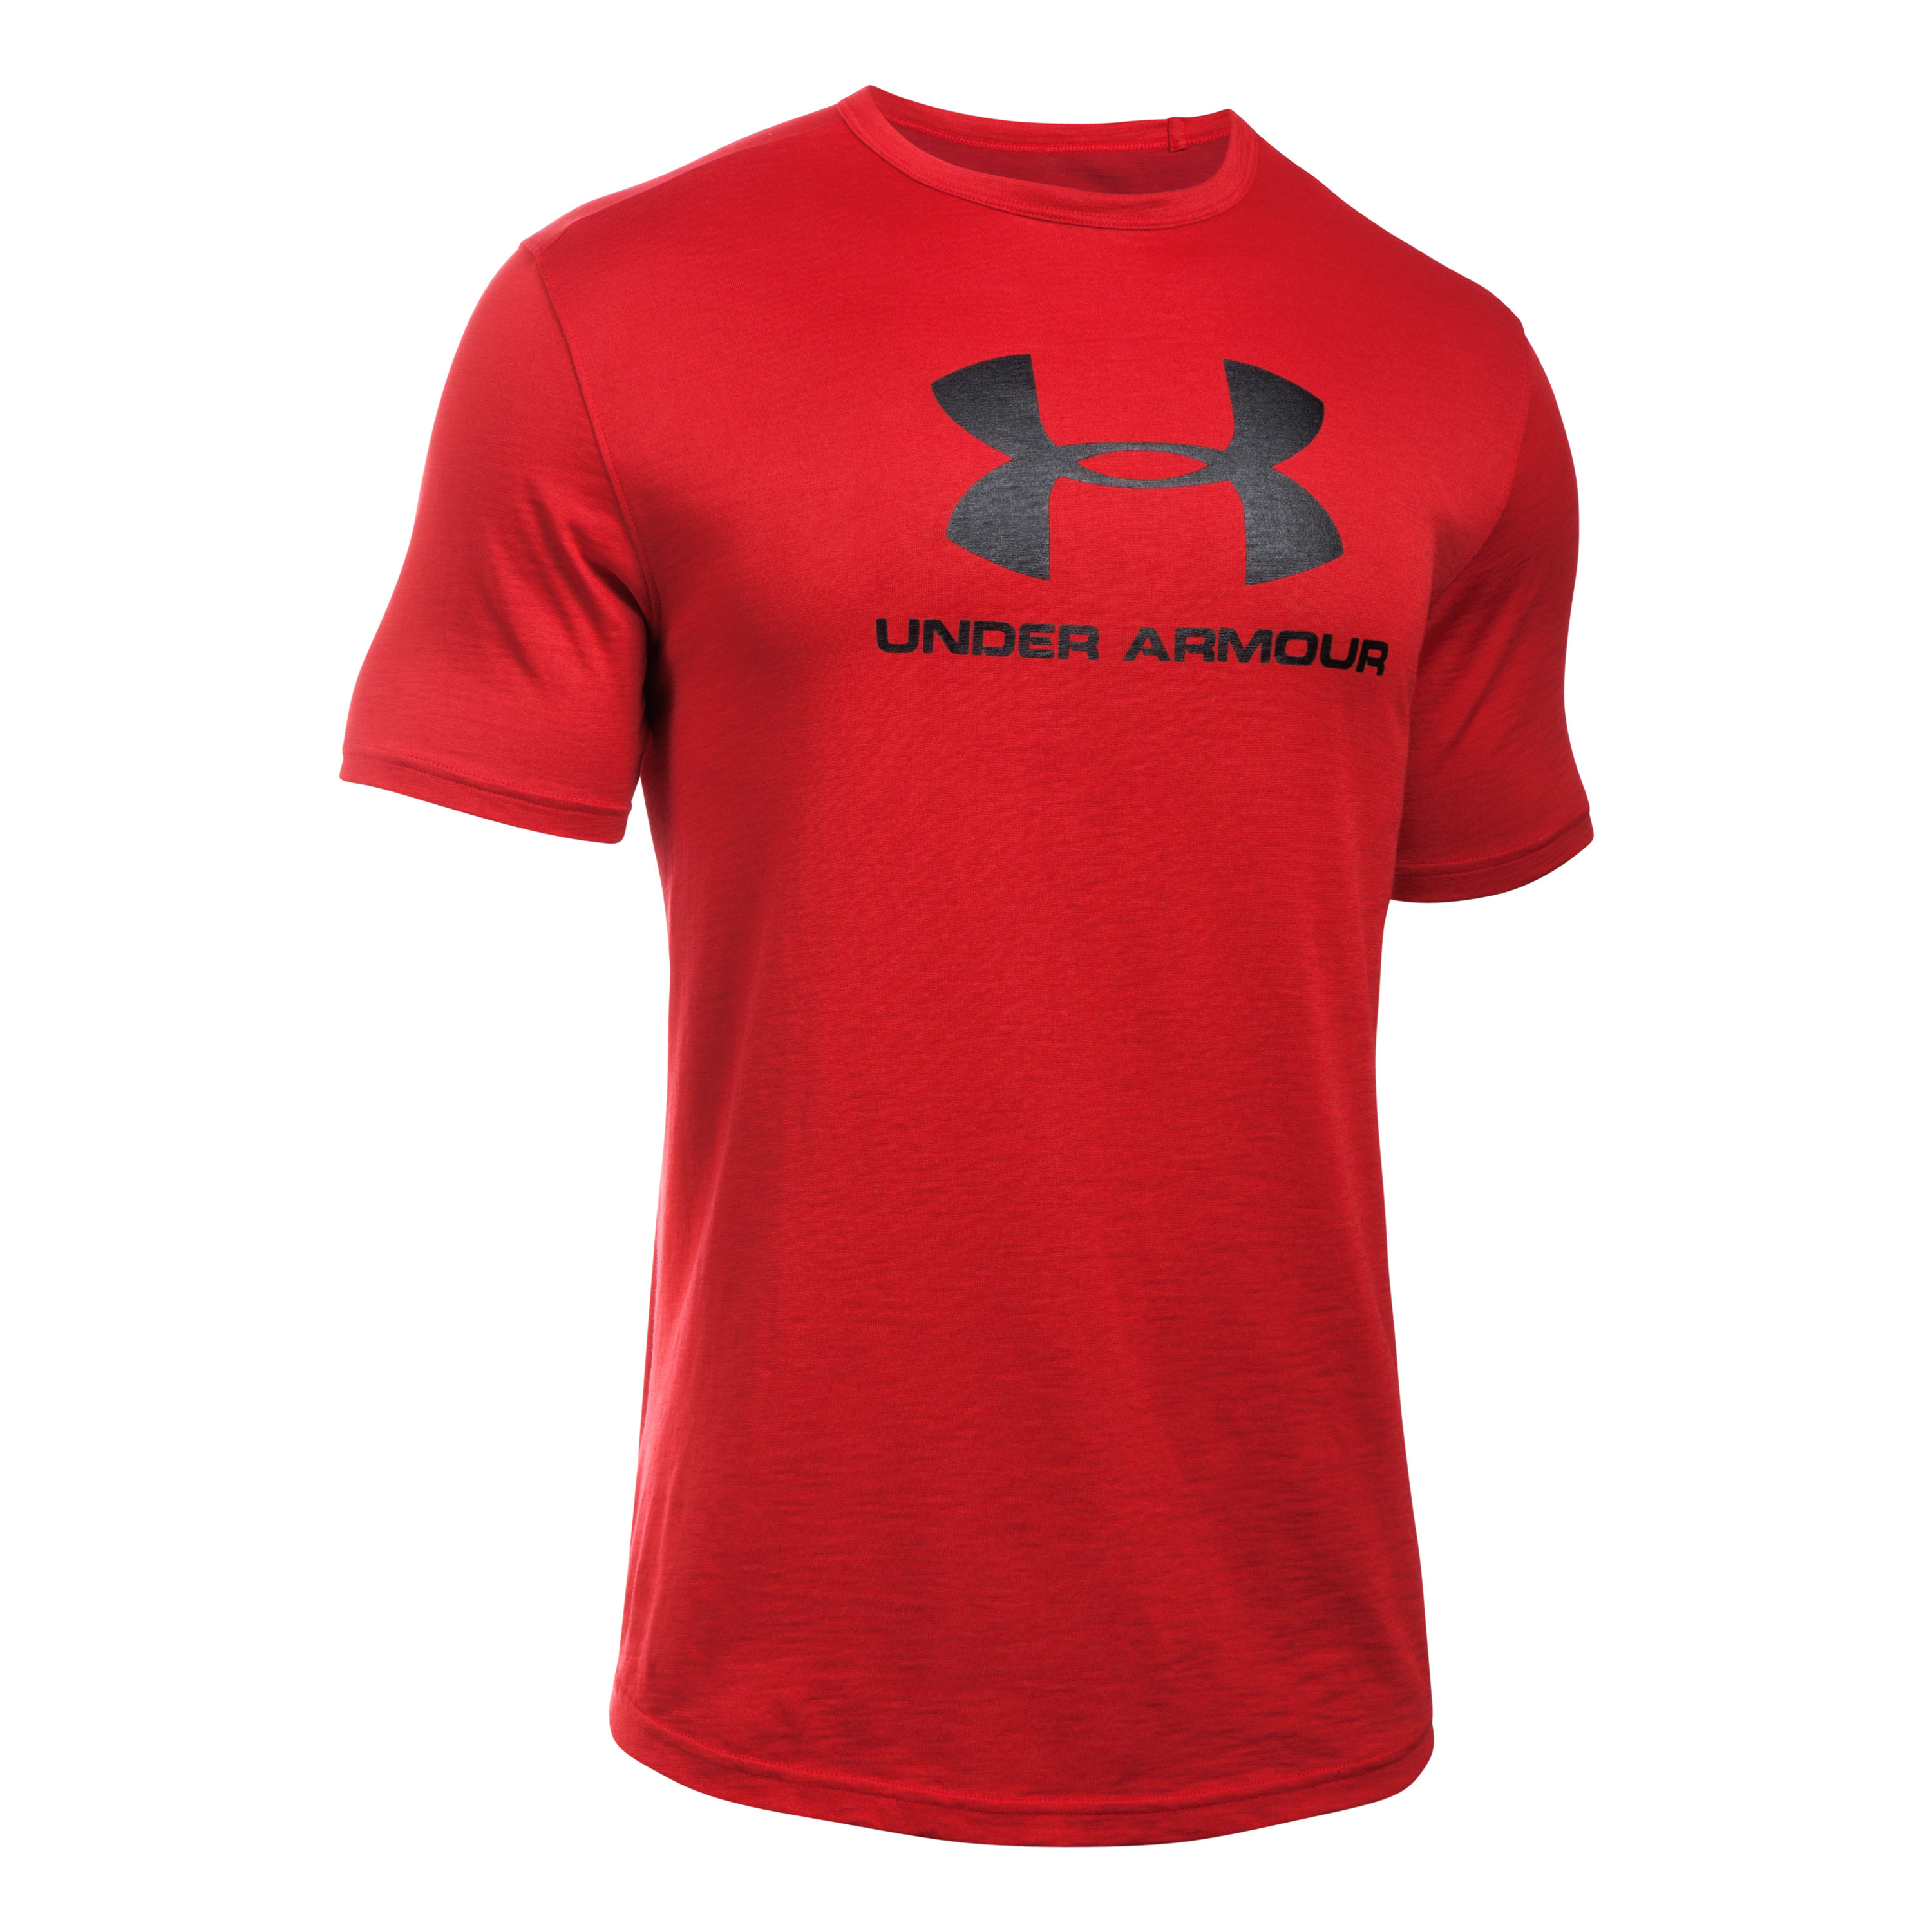 Under Armour Fitness T-Shirt Sport Style Branded Tee red